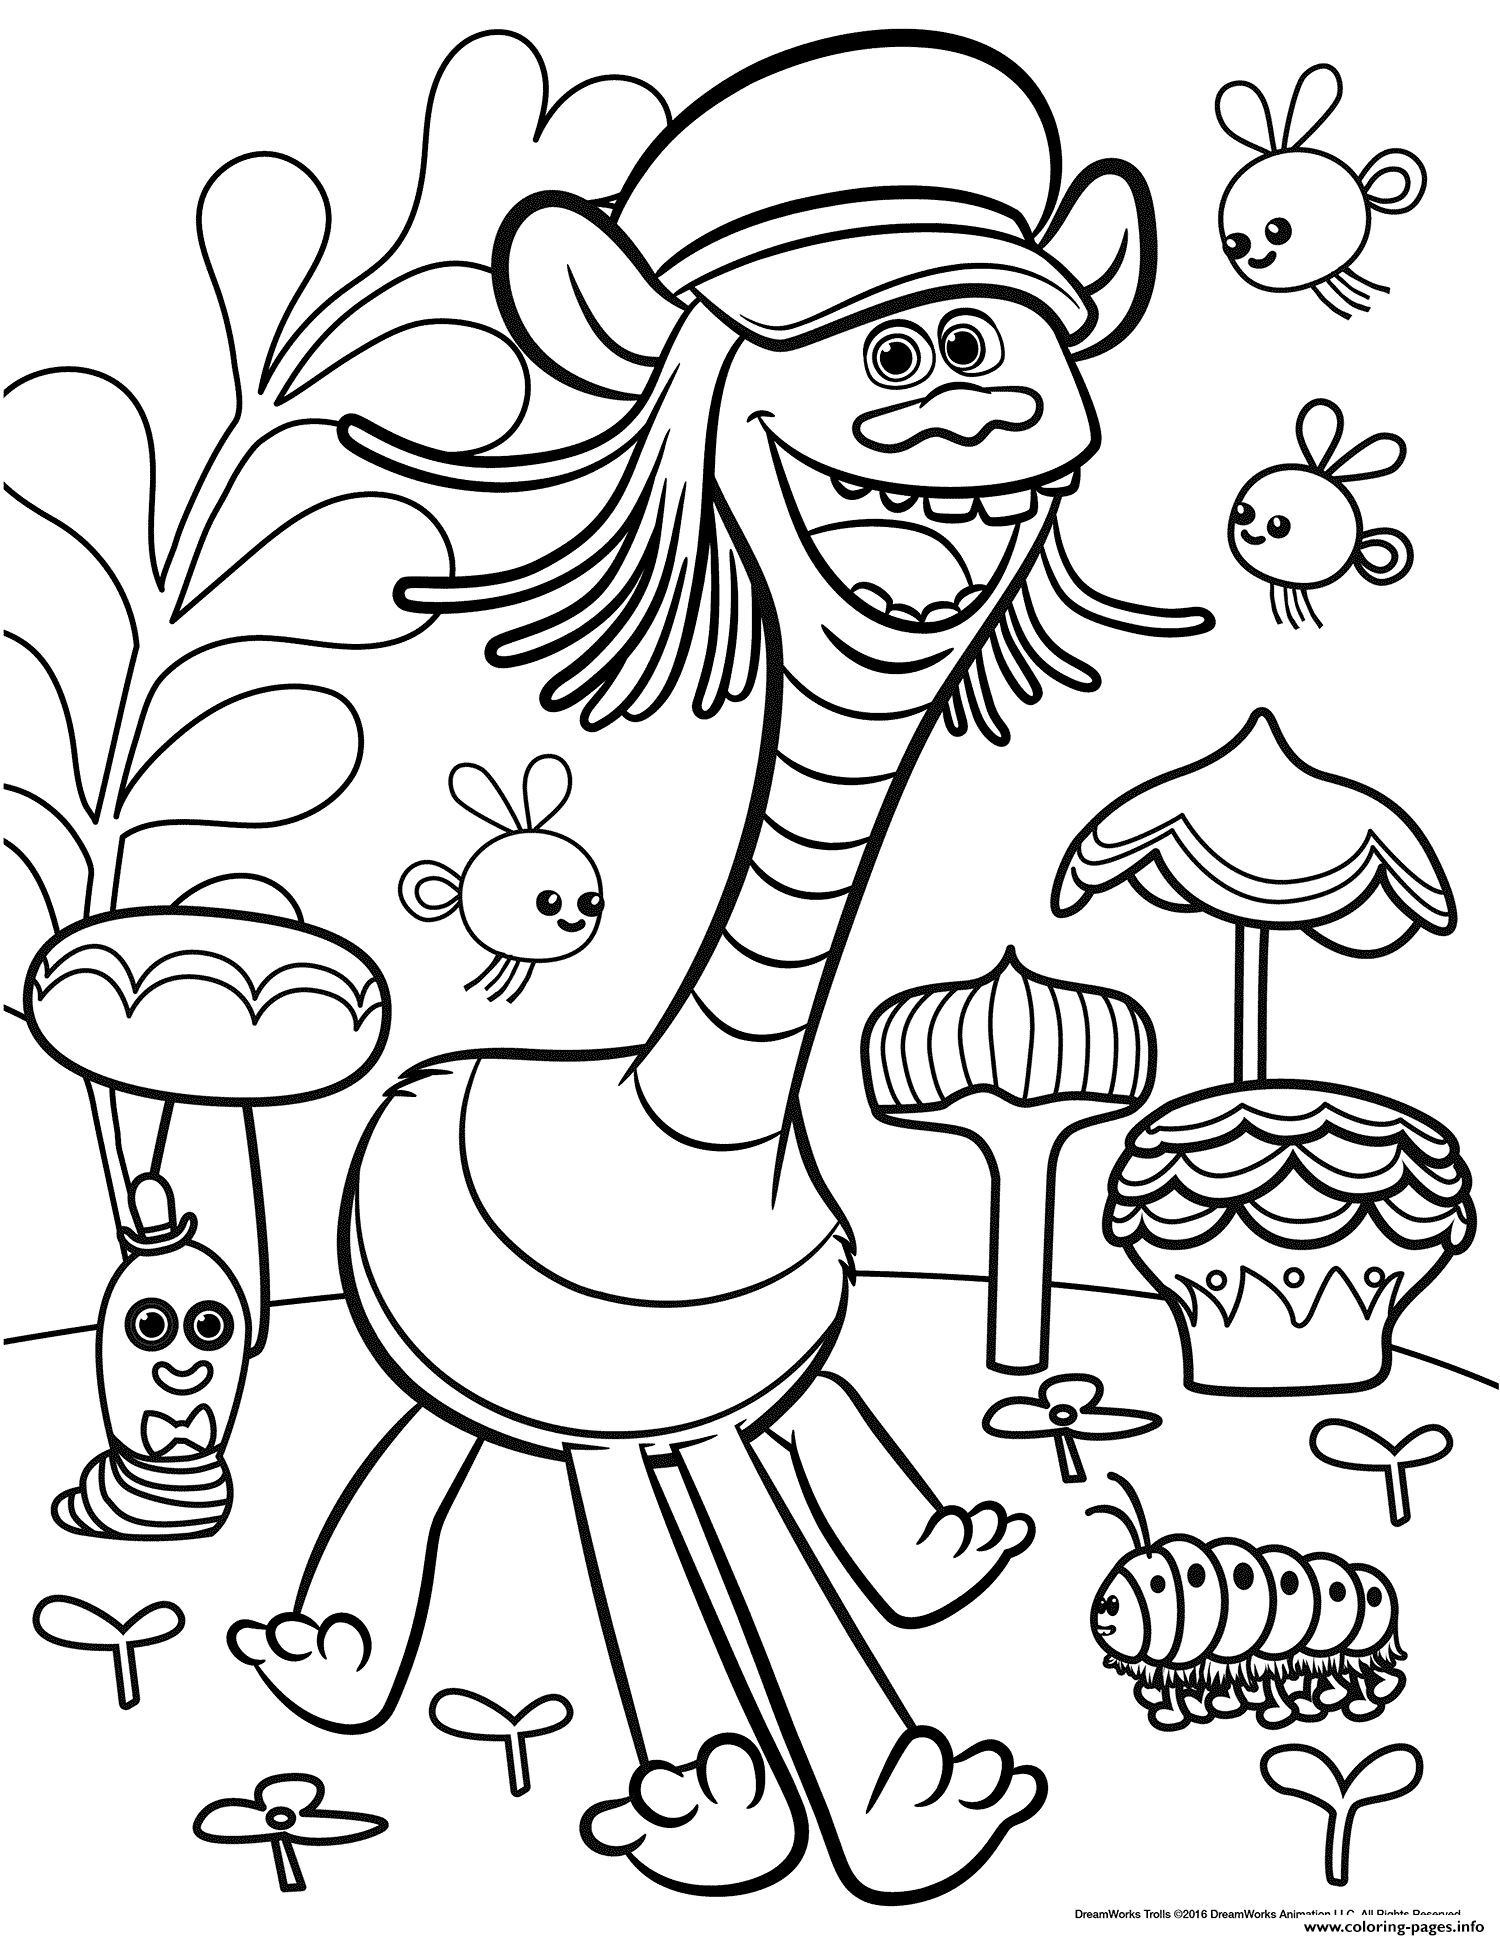 online coloring pages frozen trolls - photo#26